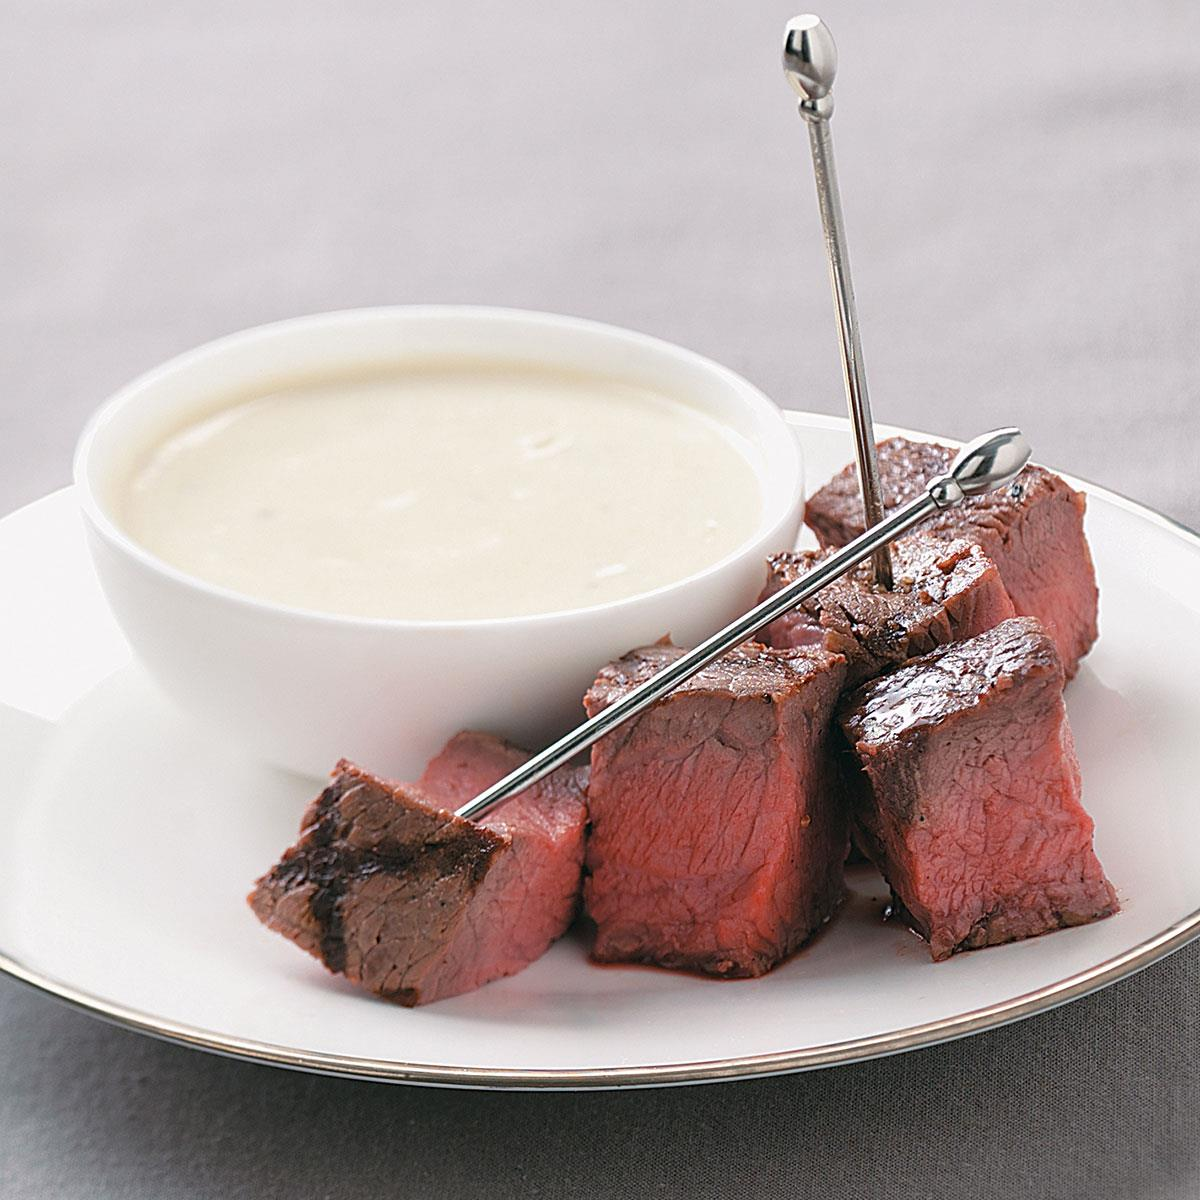 Grilled steak appetizers with stilton sauce recipe taste of home forumfinder Image collections